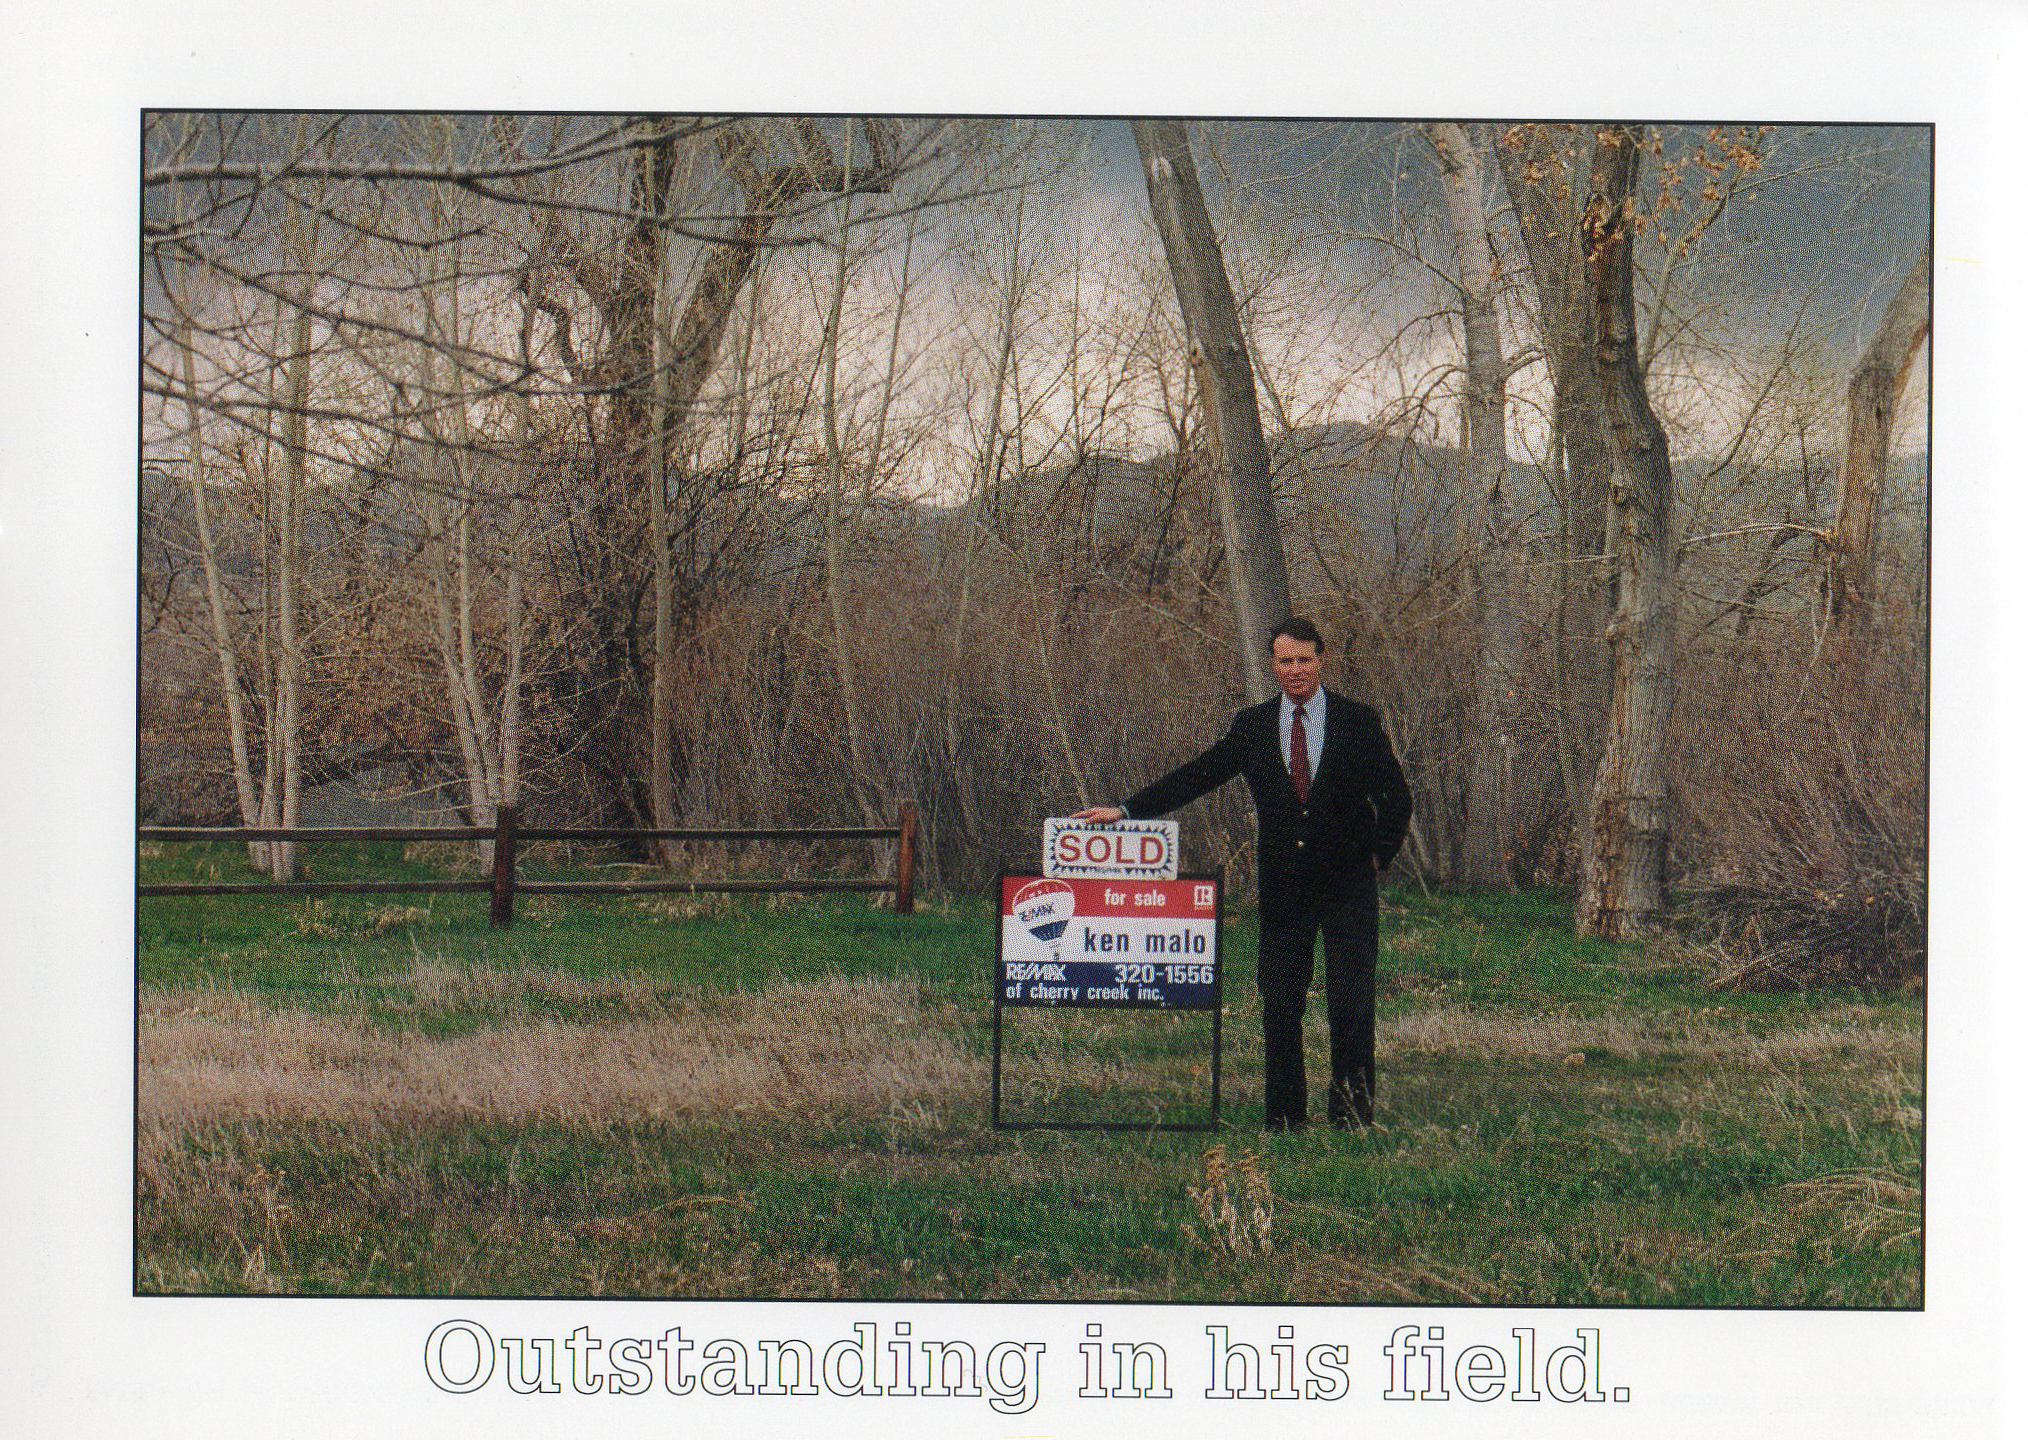 Outstanding in His Field - Ken Malo Real Estate